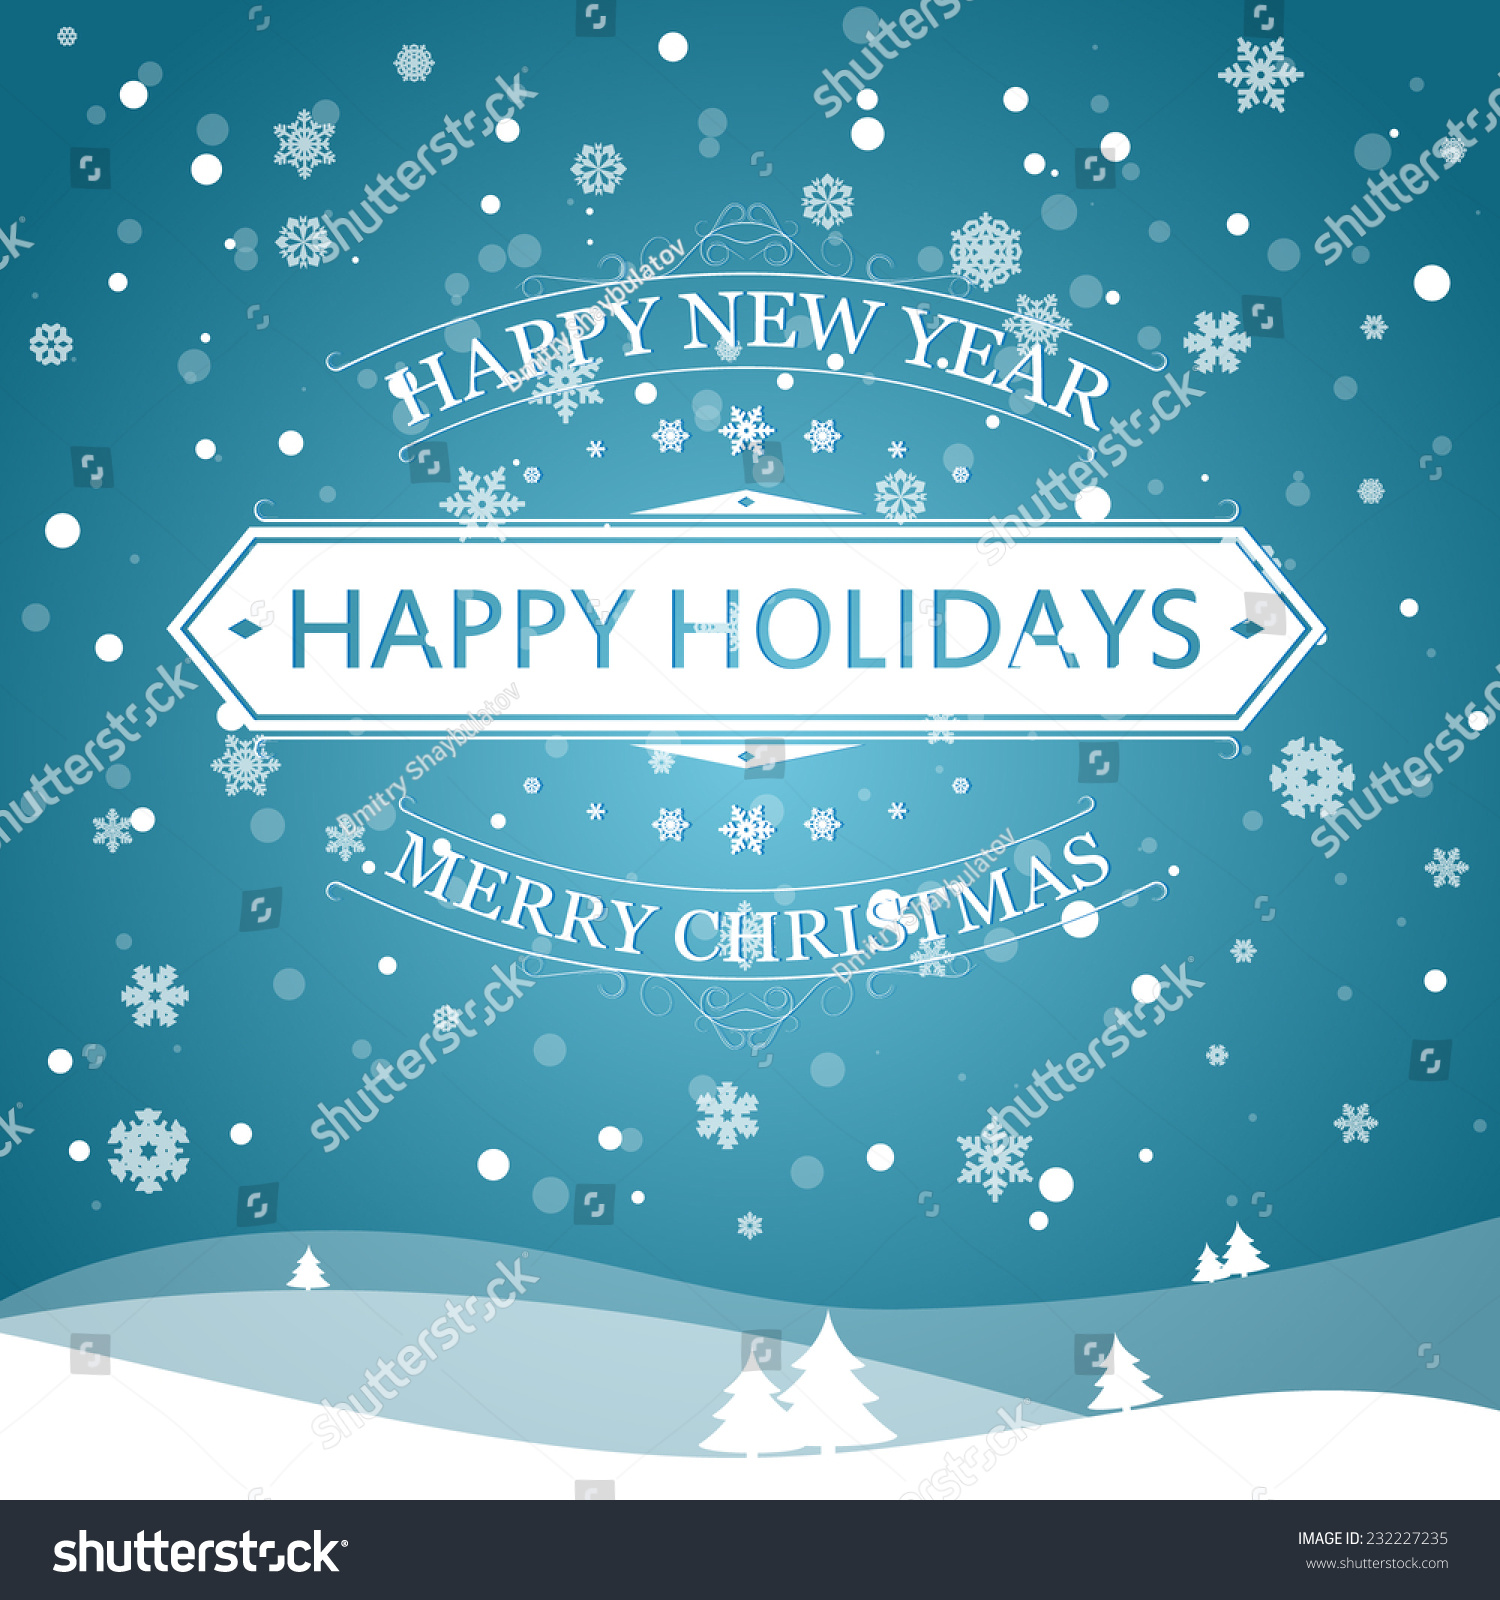 happy new year happy holidays and merry christmas vector illustration for holiday design party